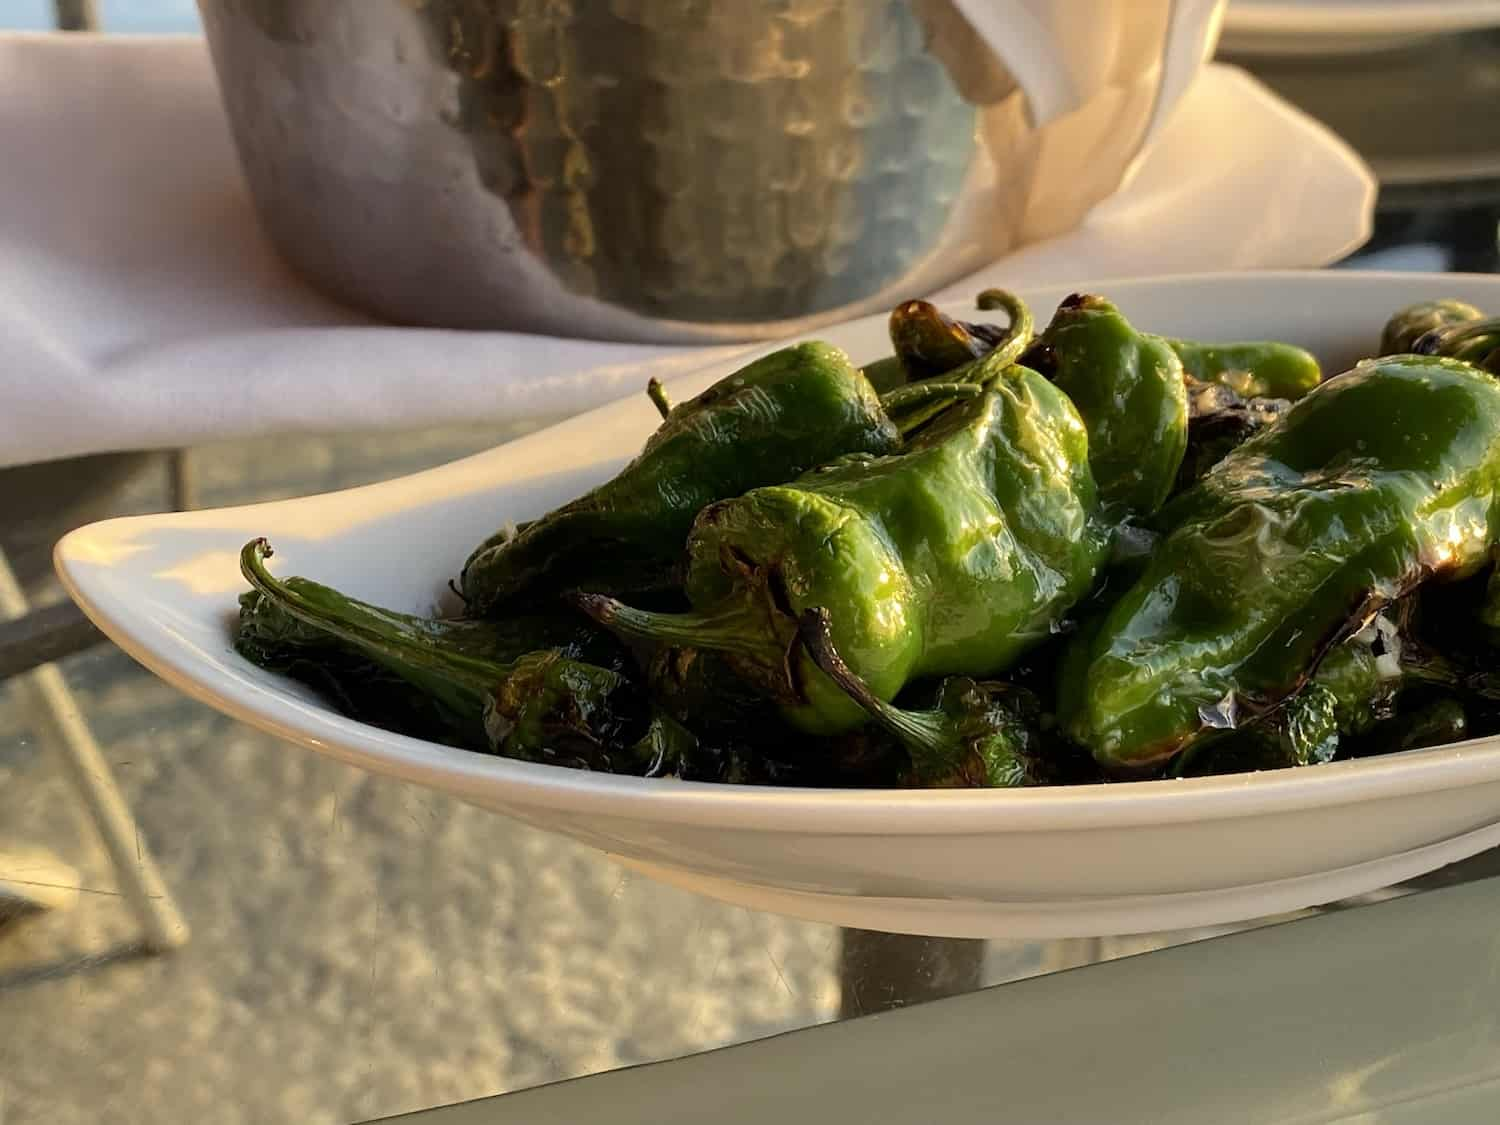 Weekend in San Jose - Grand View Restaurant Padron Peppers